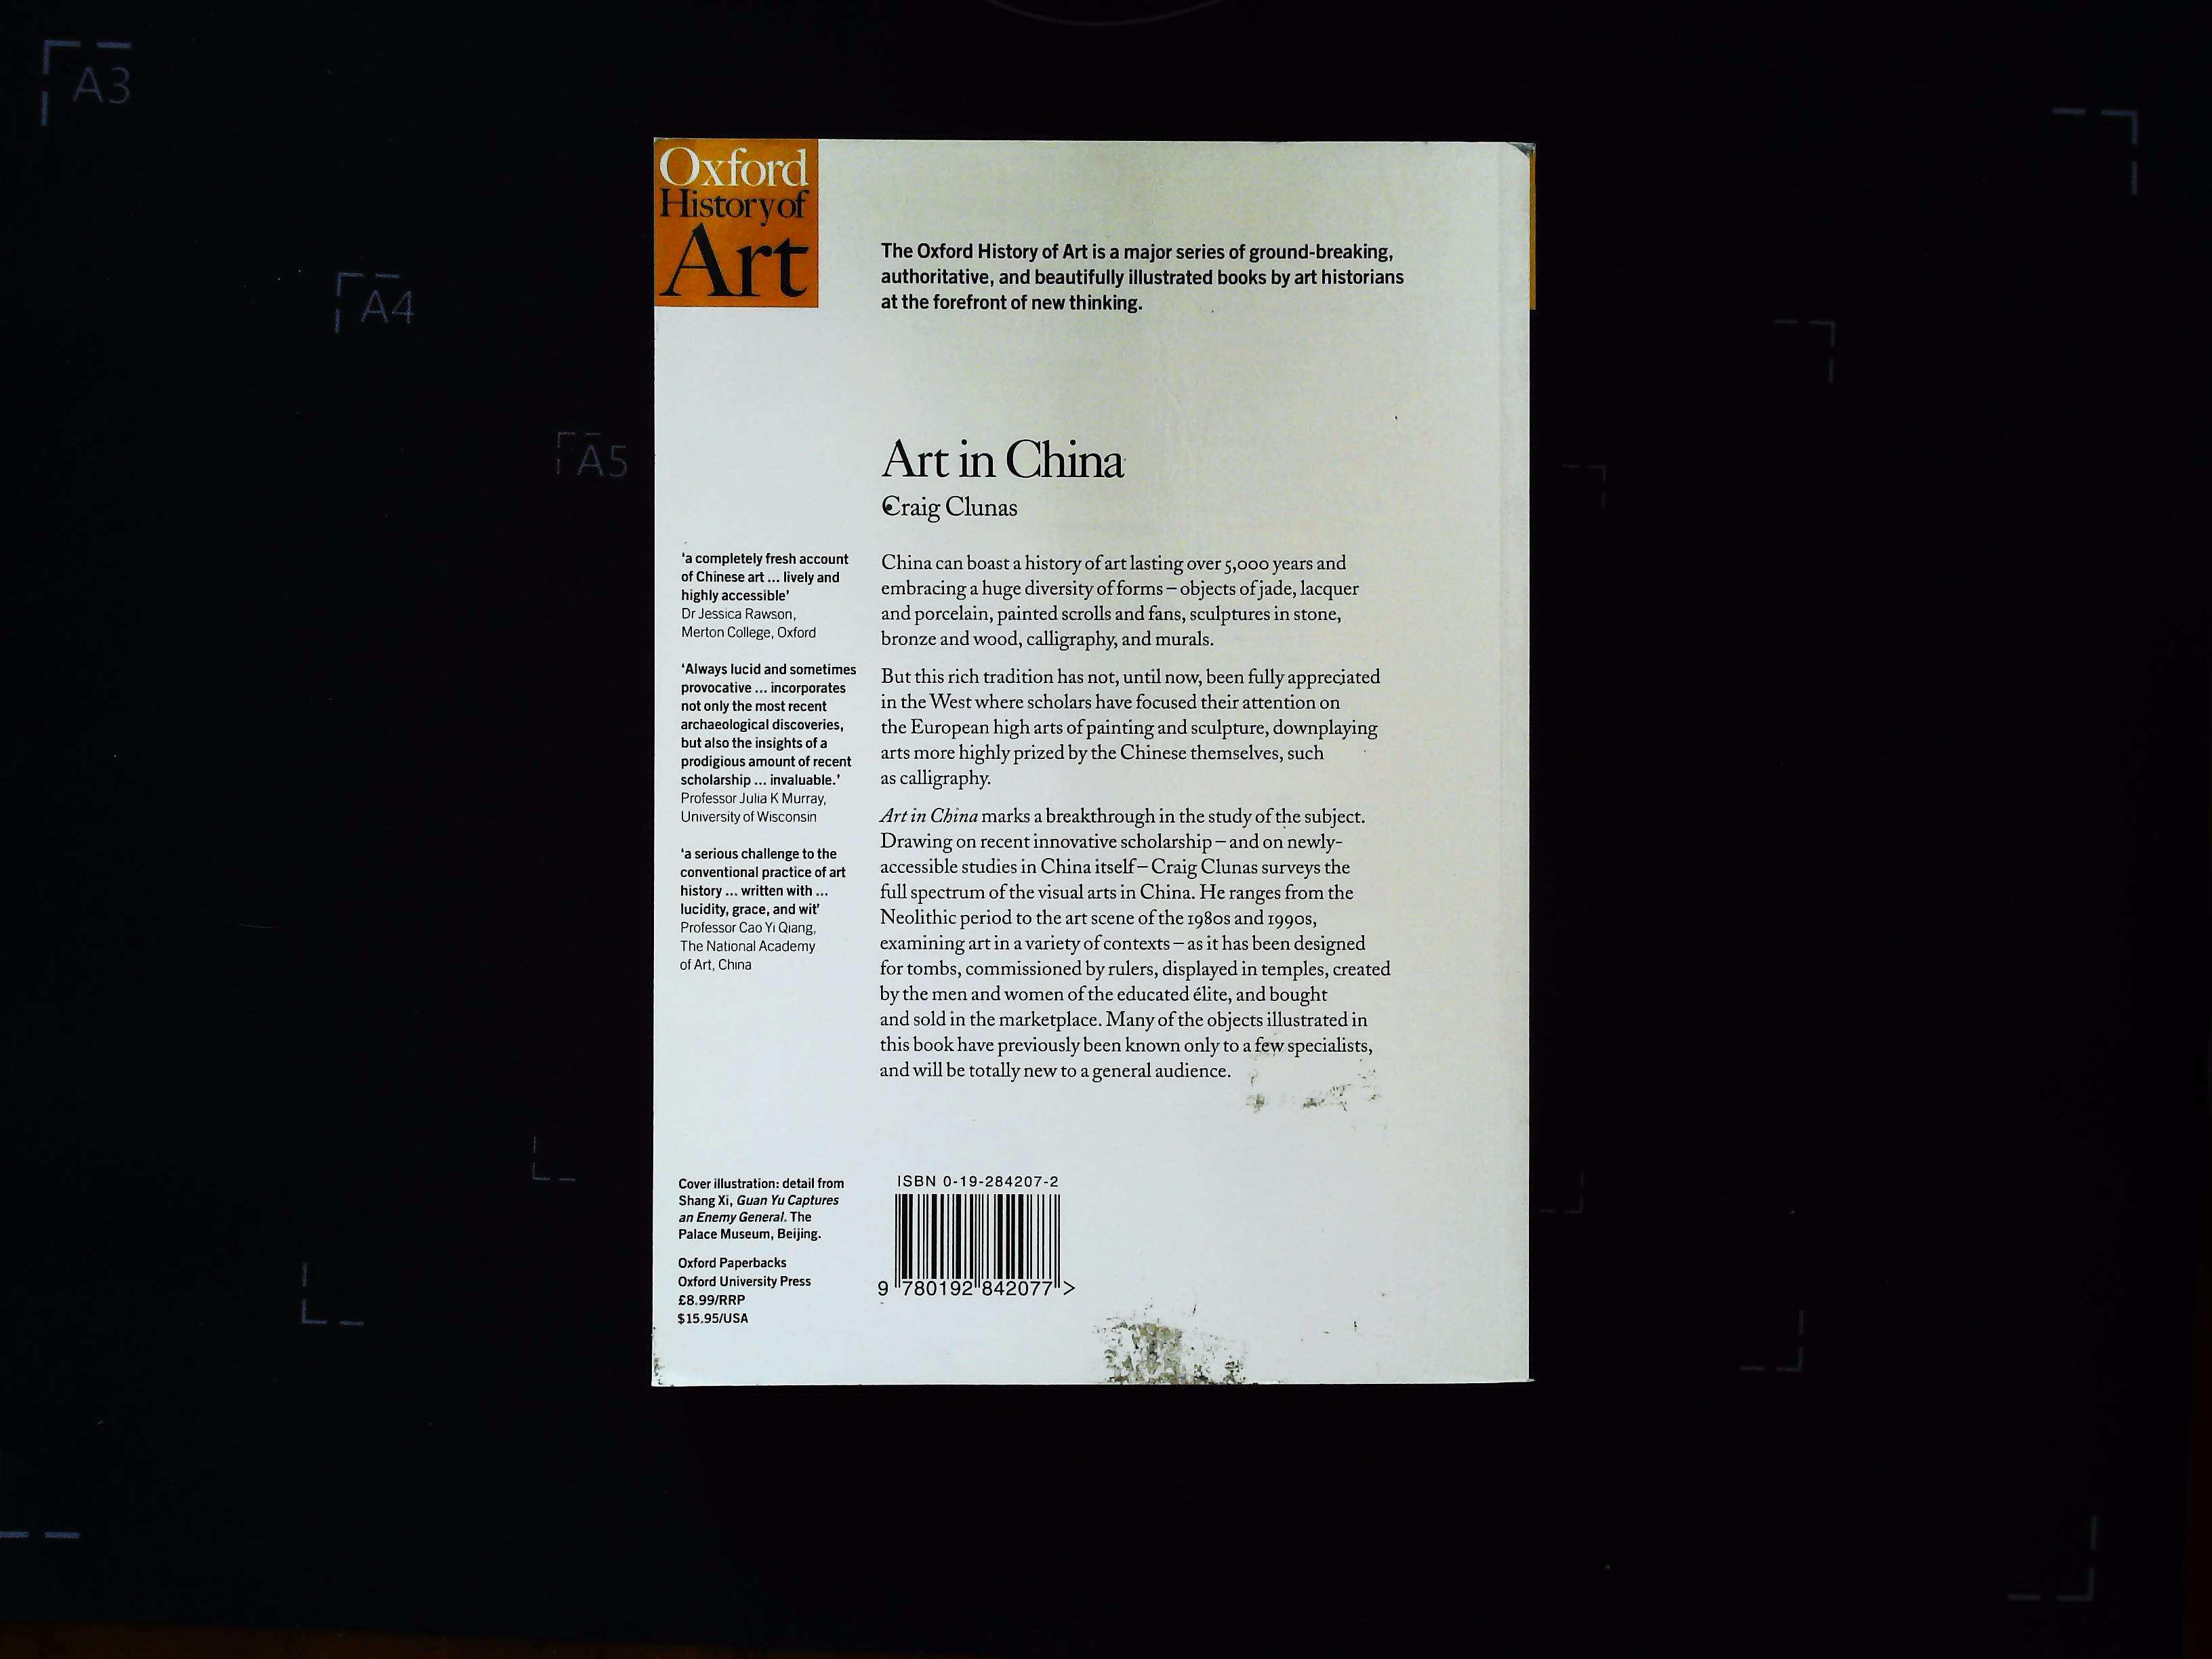 Art In China by Craig Clunas softback book 255 pages Published 1997 Oxford University Press. In good - Image 2 of 3